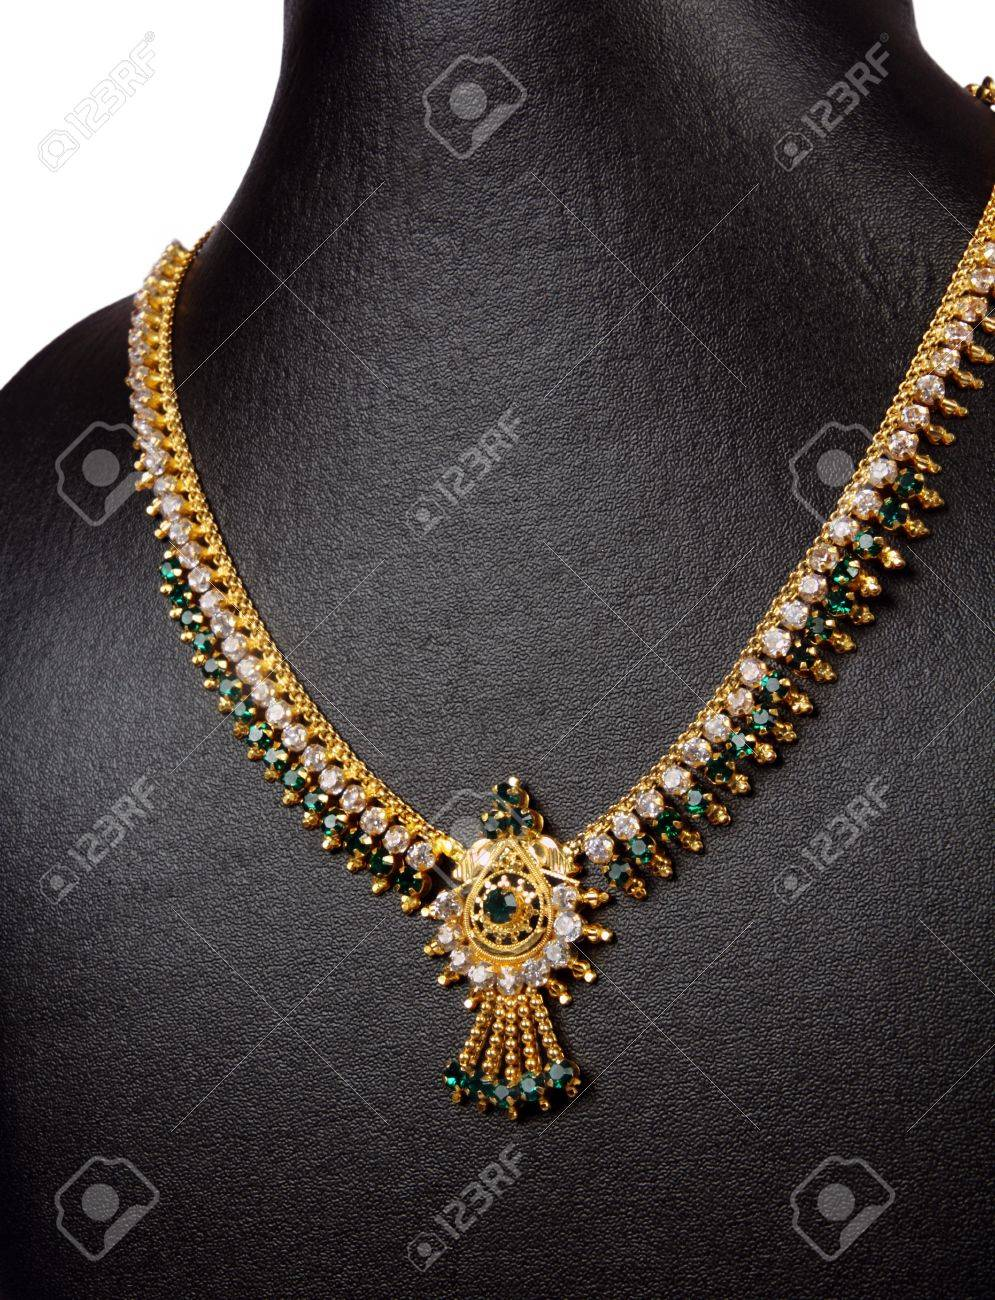 jewellery from on gold january vat legacy suffer may five the hazoorilal to uae major necklace impose will facebook news importer a indian percent exports